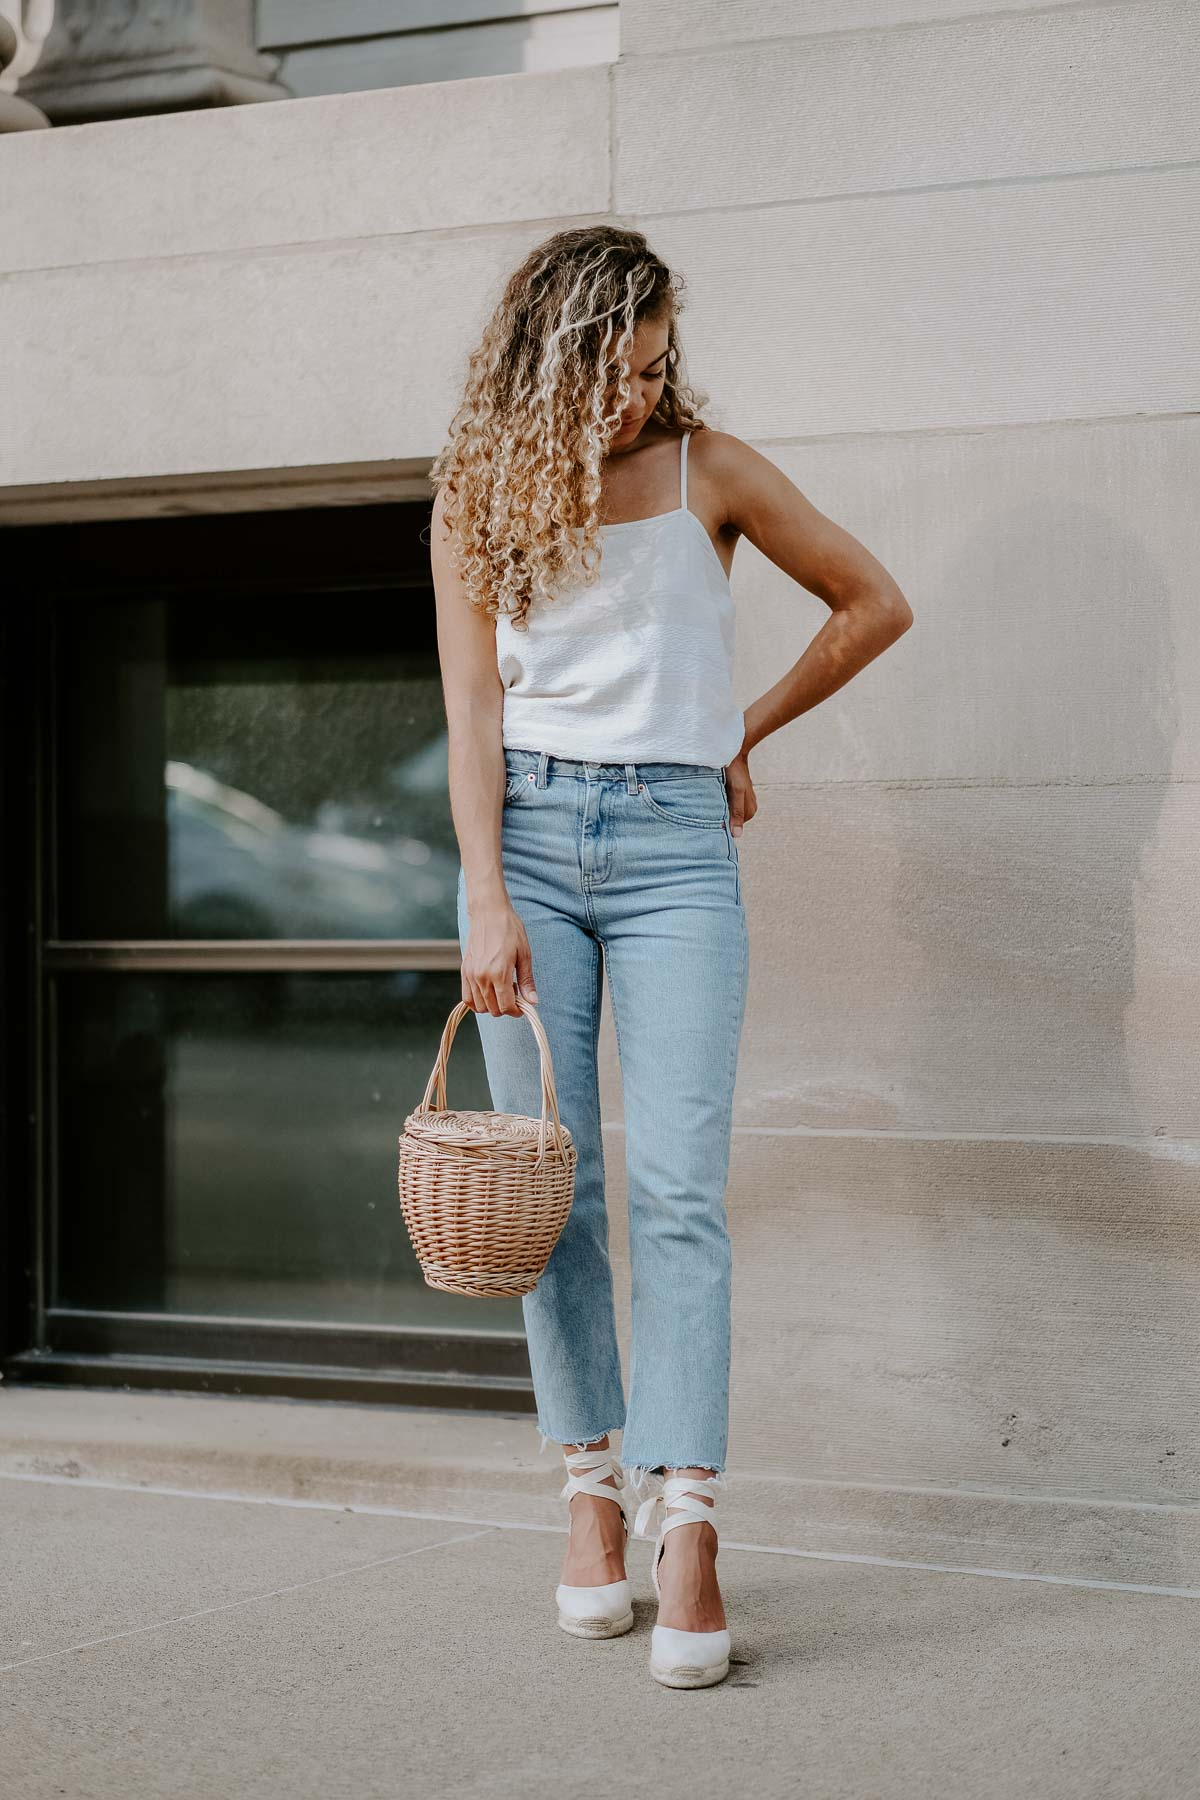 Must have French girl shoes are espadrilles for the summer